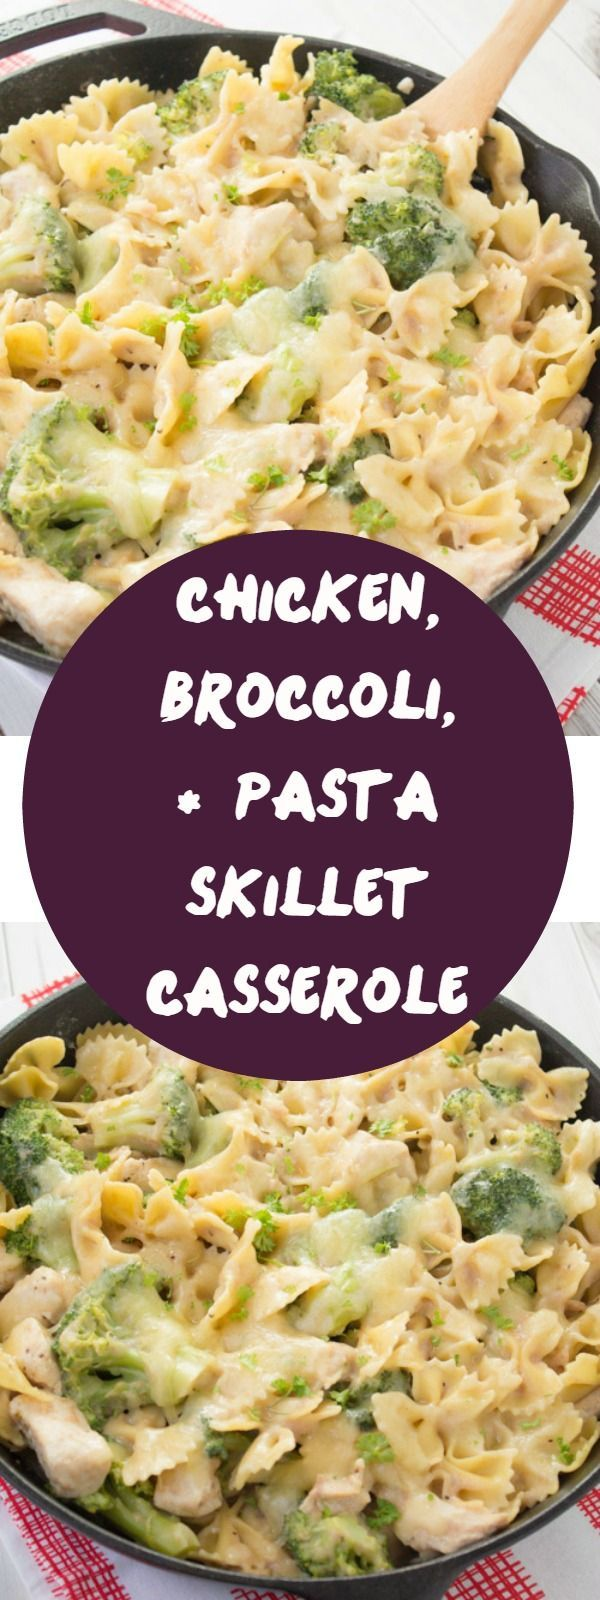 If you are a fan of pasta recipes, then you are going to love this chicken pasta casserole! It's packed with broccoli, pasta,